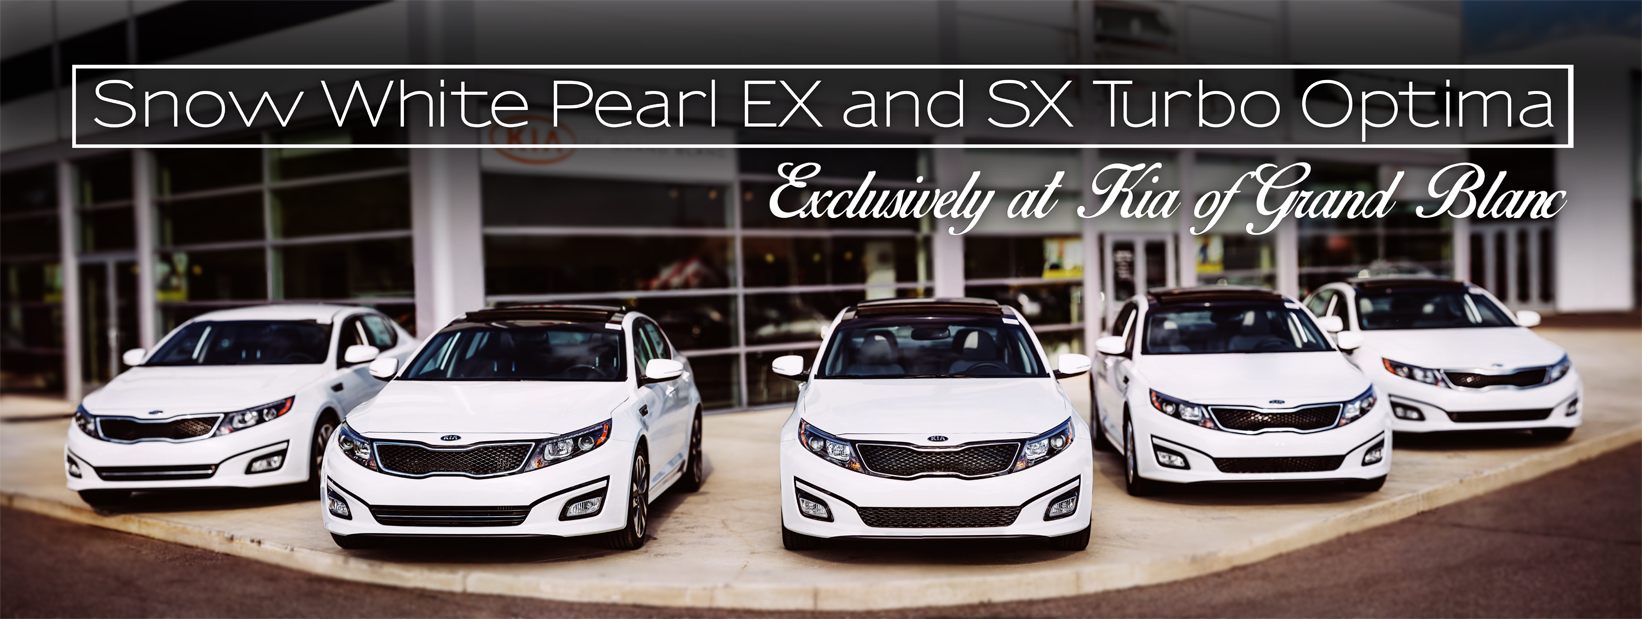 Web Ad done for local Dealership. Photography by  Visual Theory